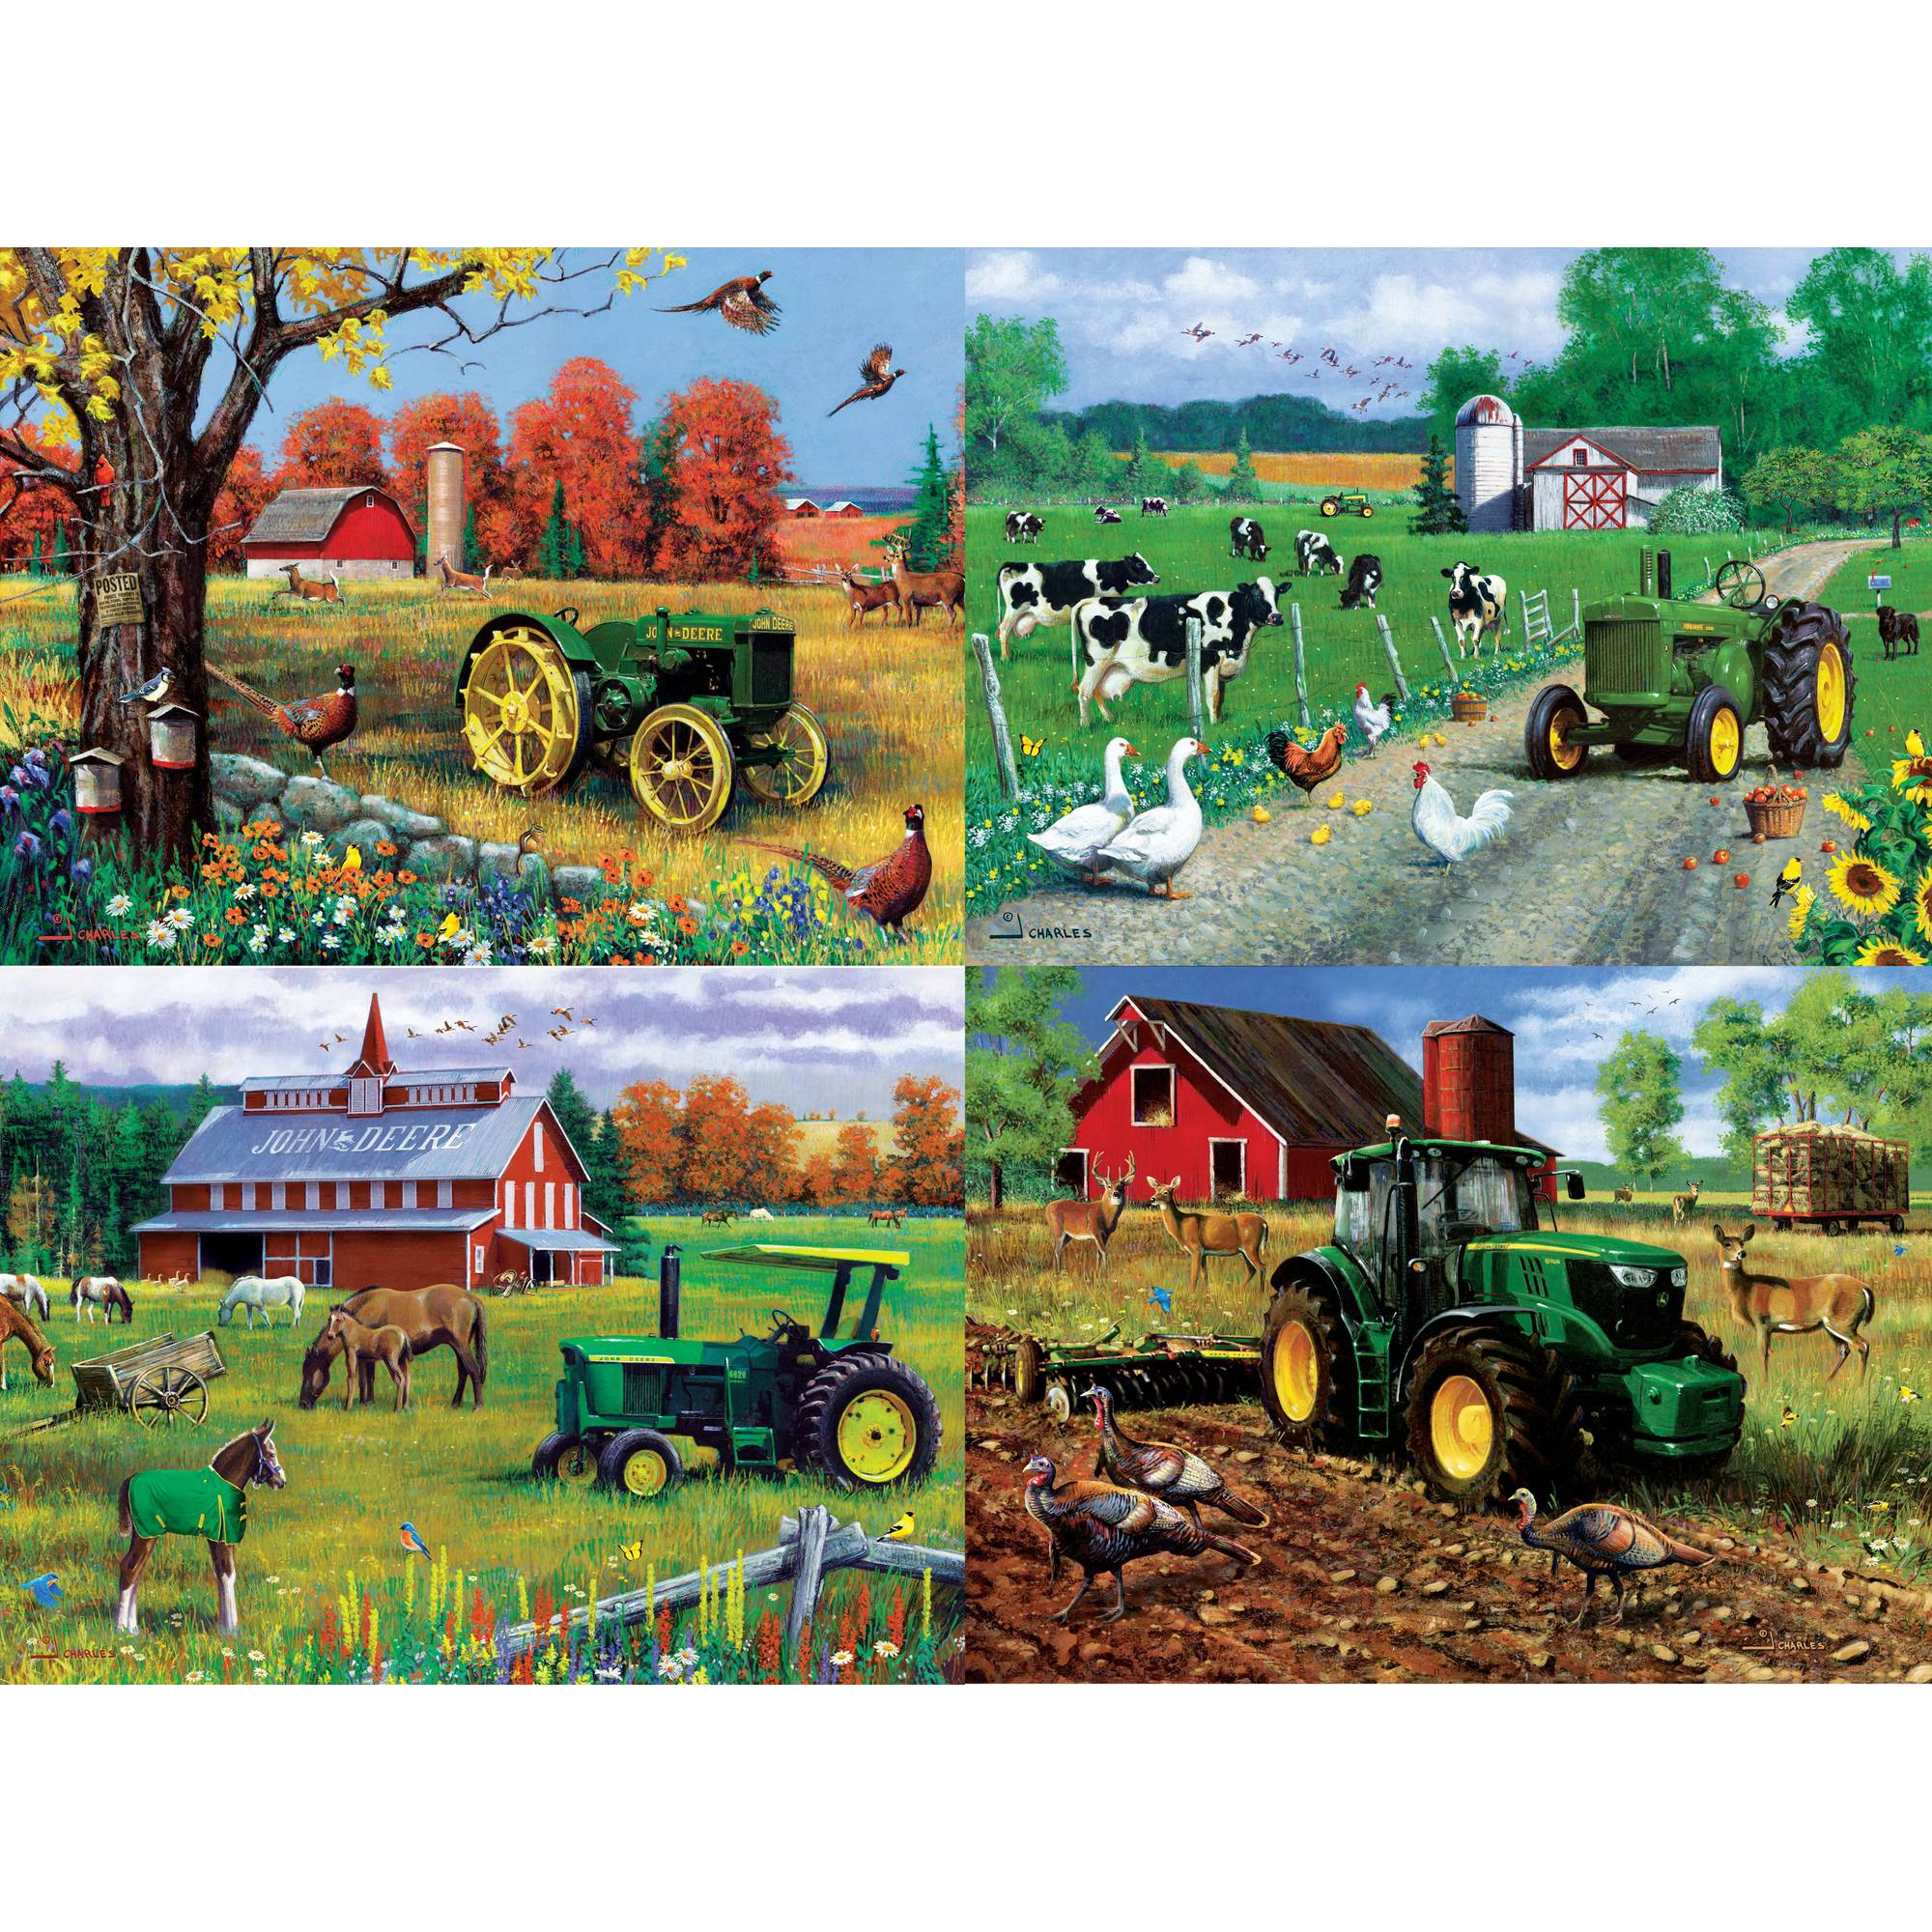 MasterPieces John Deere 4-Pack 500 Piece Puzzle by MasterPieces